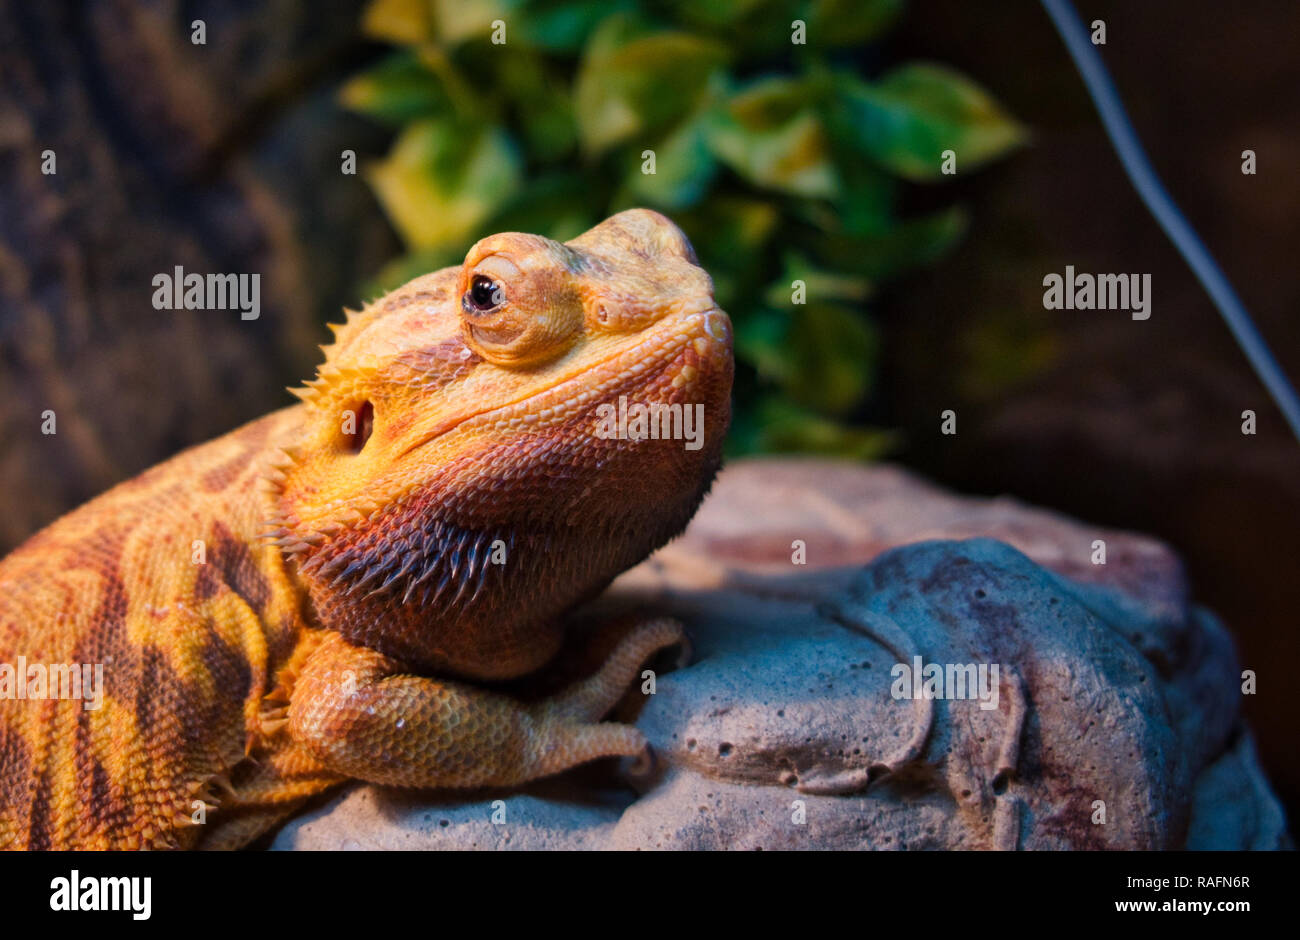 Bearded dragon perched on a rock - Stock Image